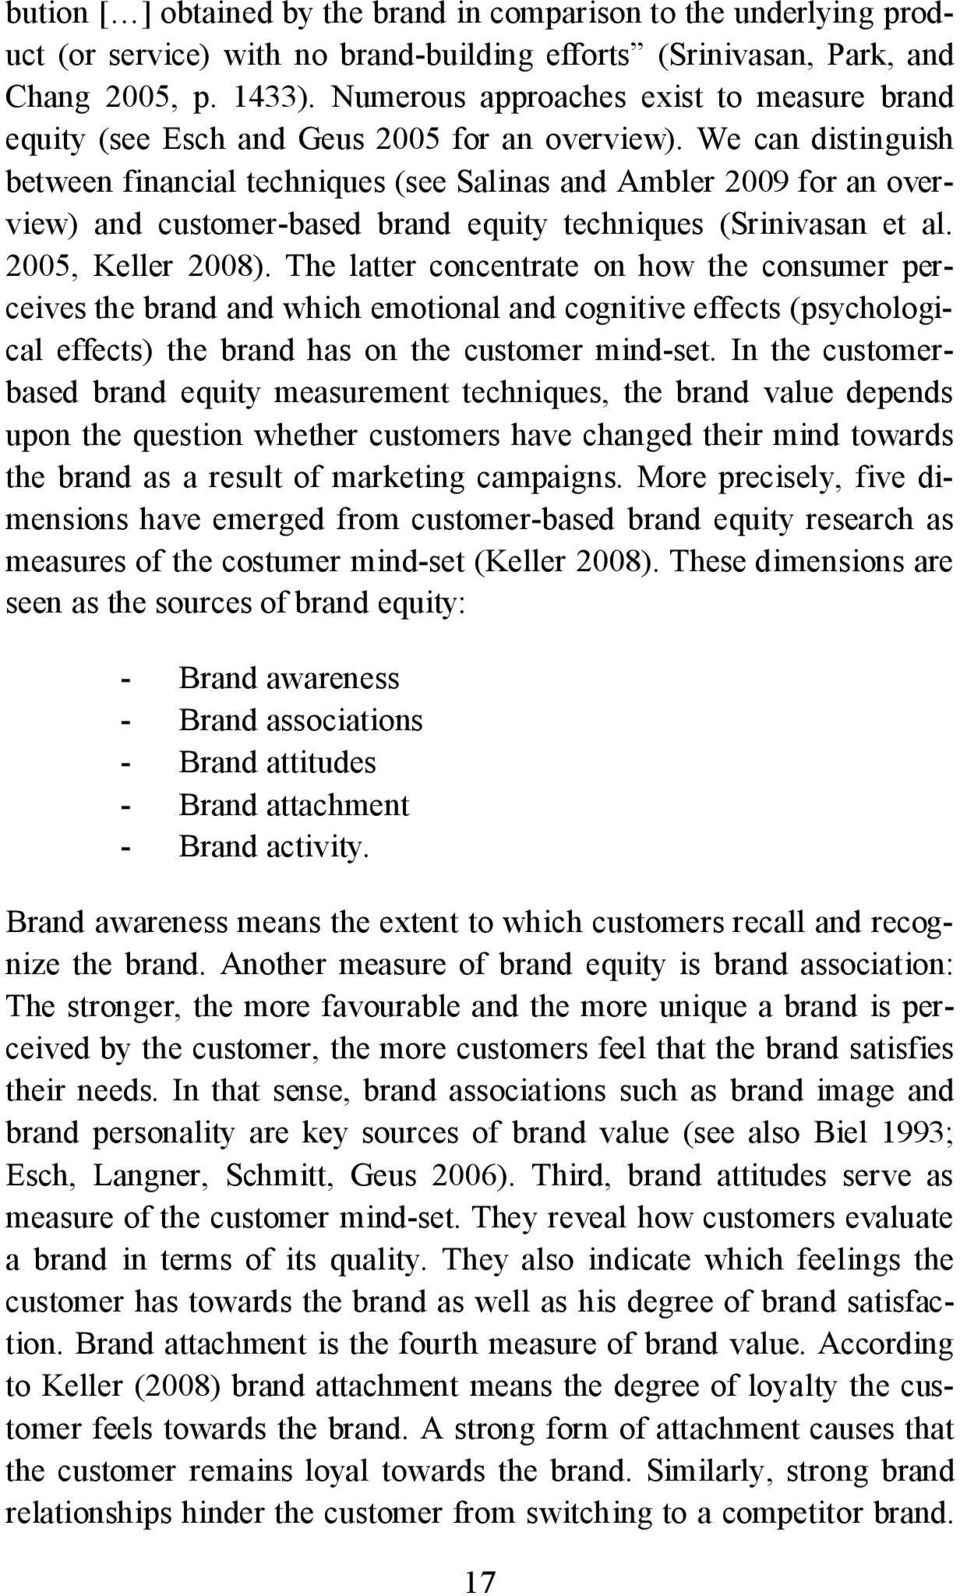 We can distinguish between financial techniques (see Salinas and Ambler 2009 for an overview) and customer-based brand equity techniques (Srinivasan et al. 2005, Keller 2008).